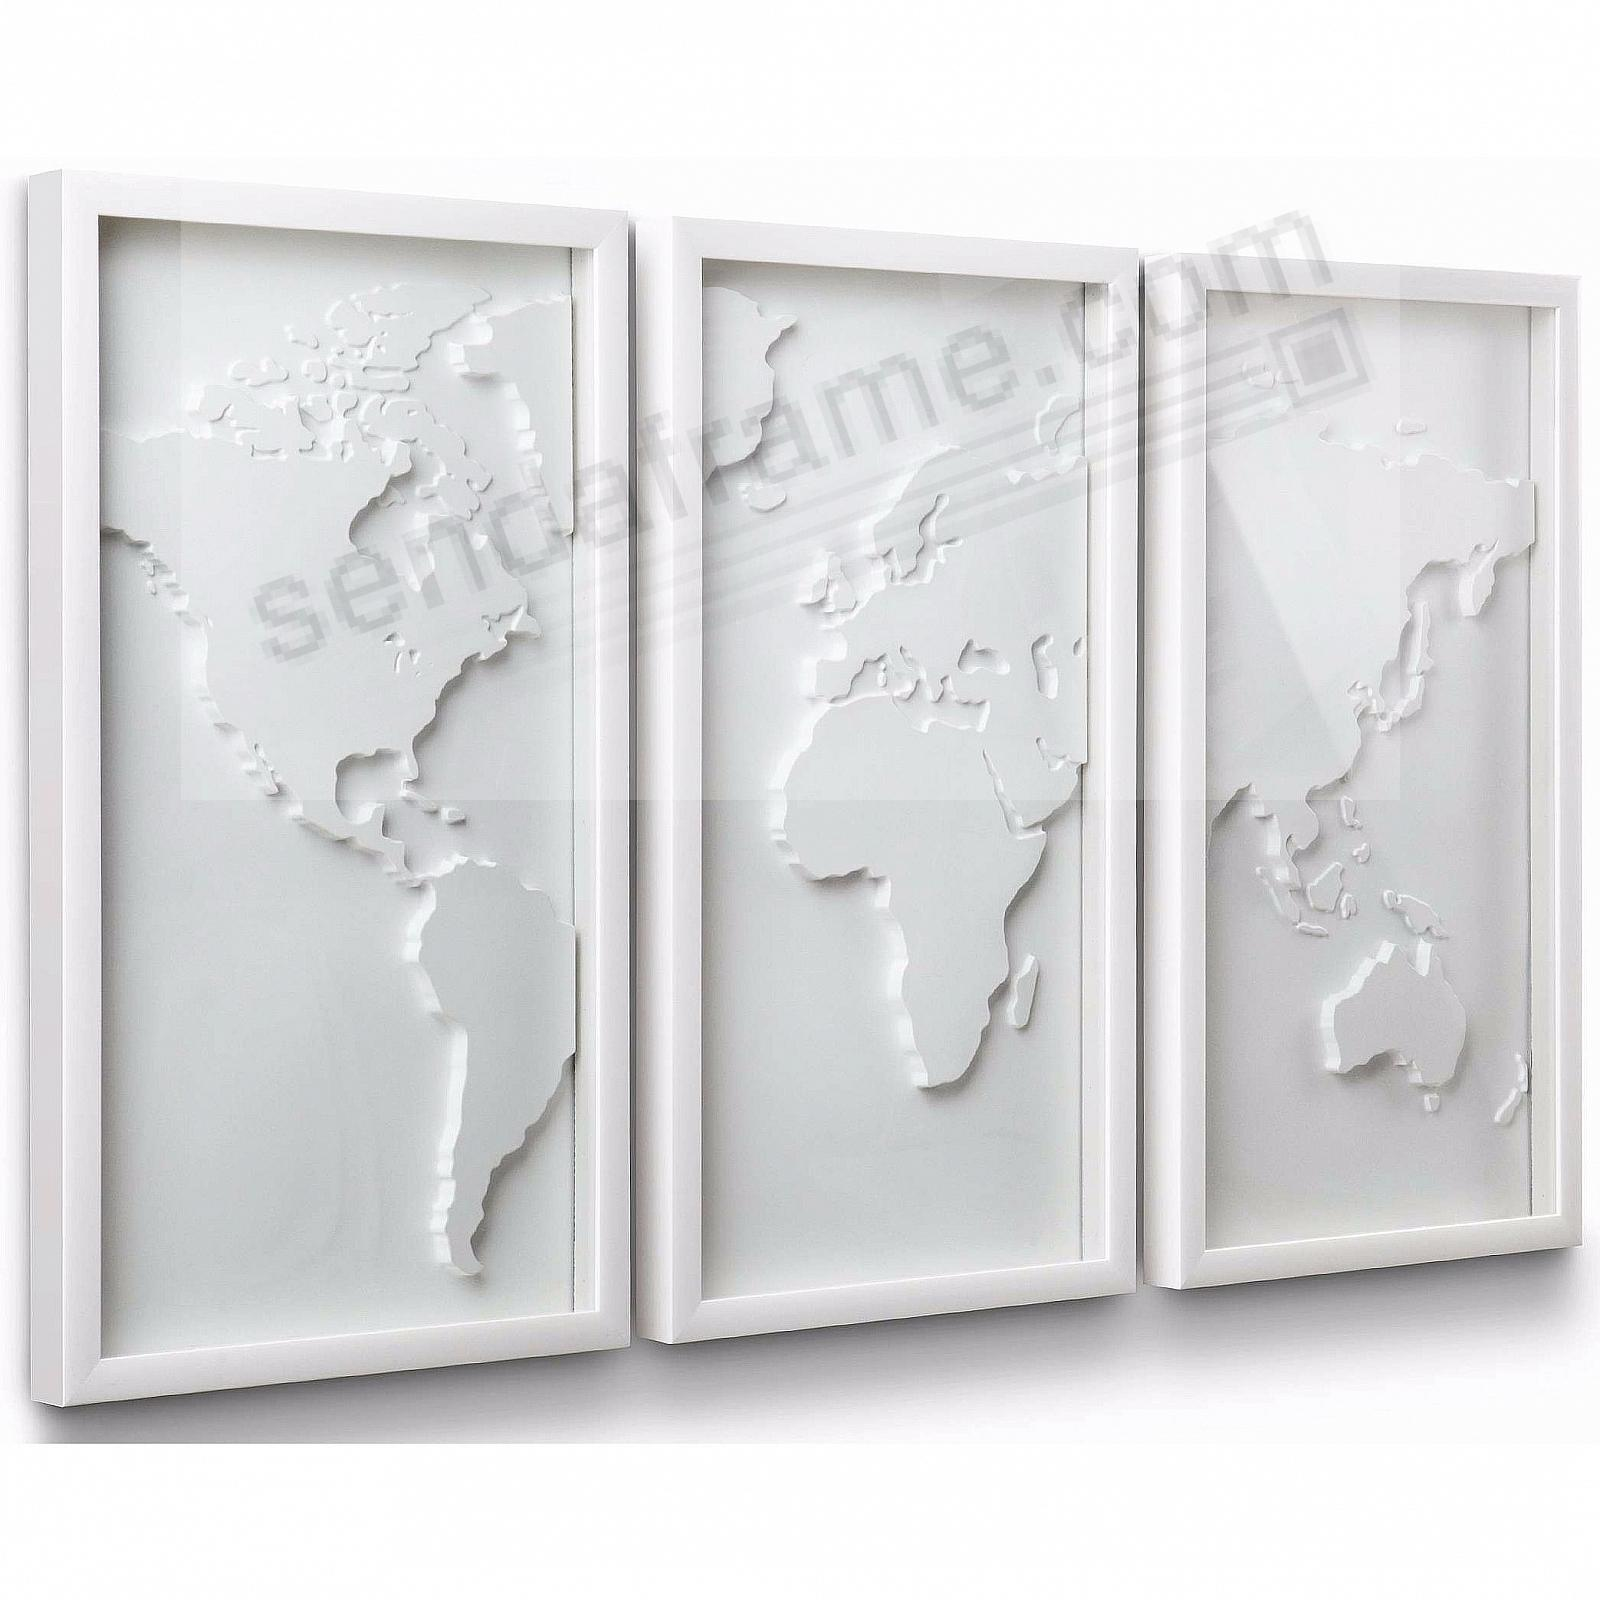 The original mapster 3 pc white relief world map by umbra picture the original mapster 3 pc white relief world map by umbra gumiabroncs Choice Image